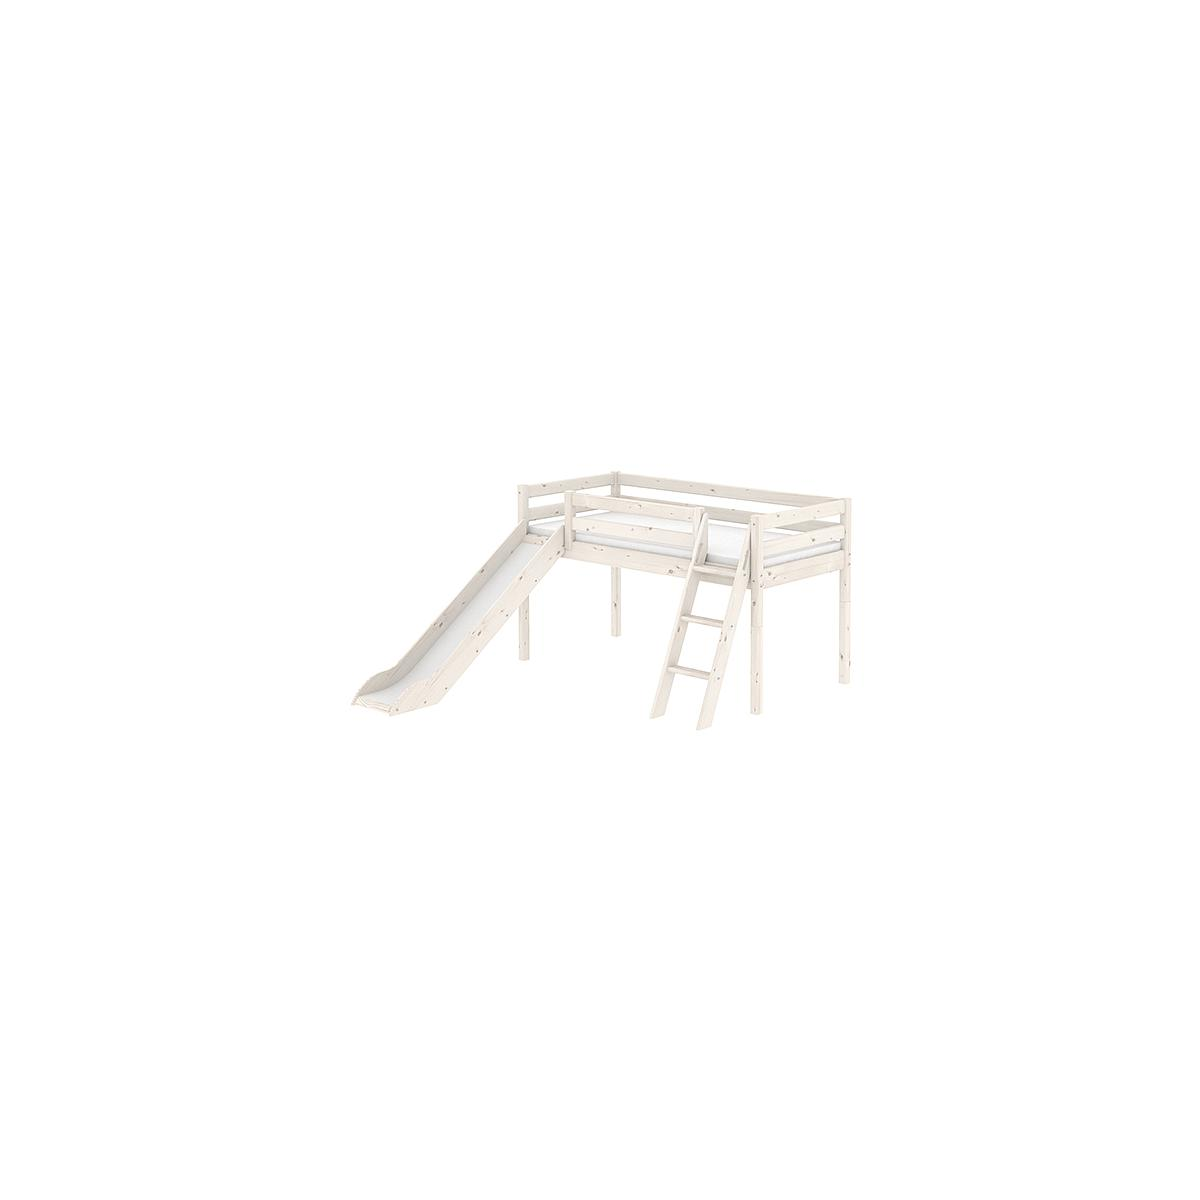 Cama media alta 90x190 CLASSIC Flexa escalera inclinada tobogán blanco cal